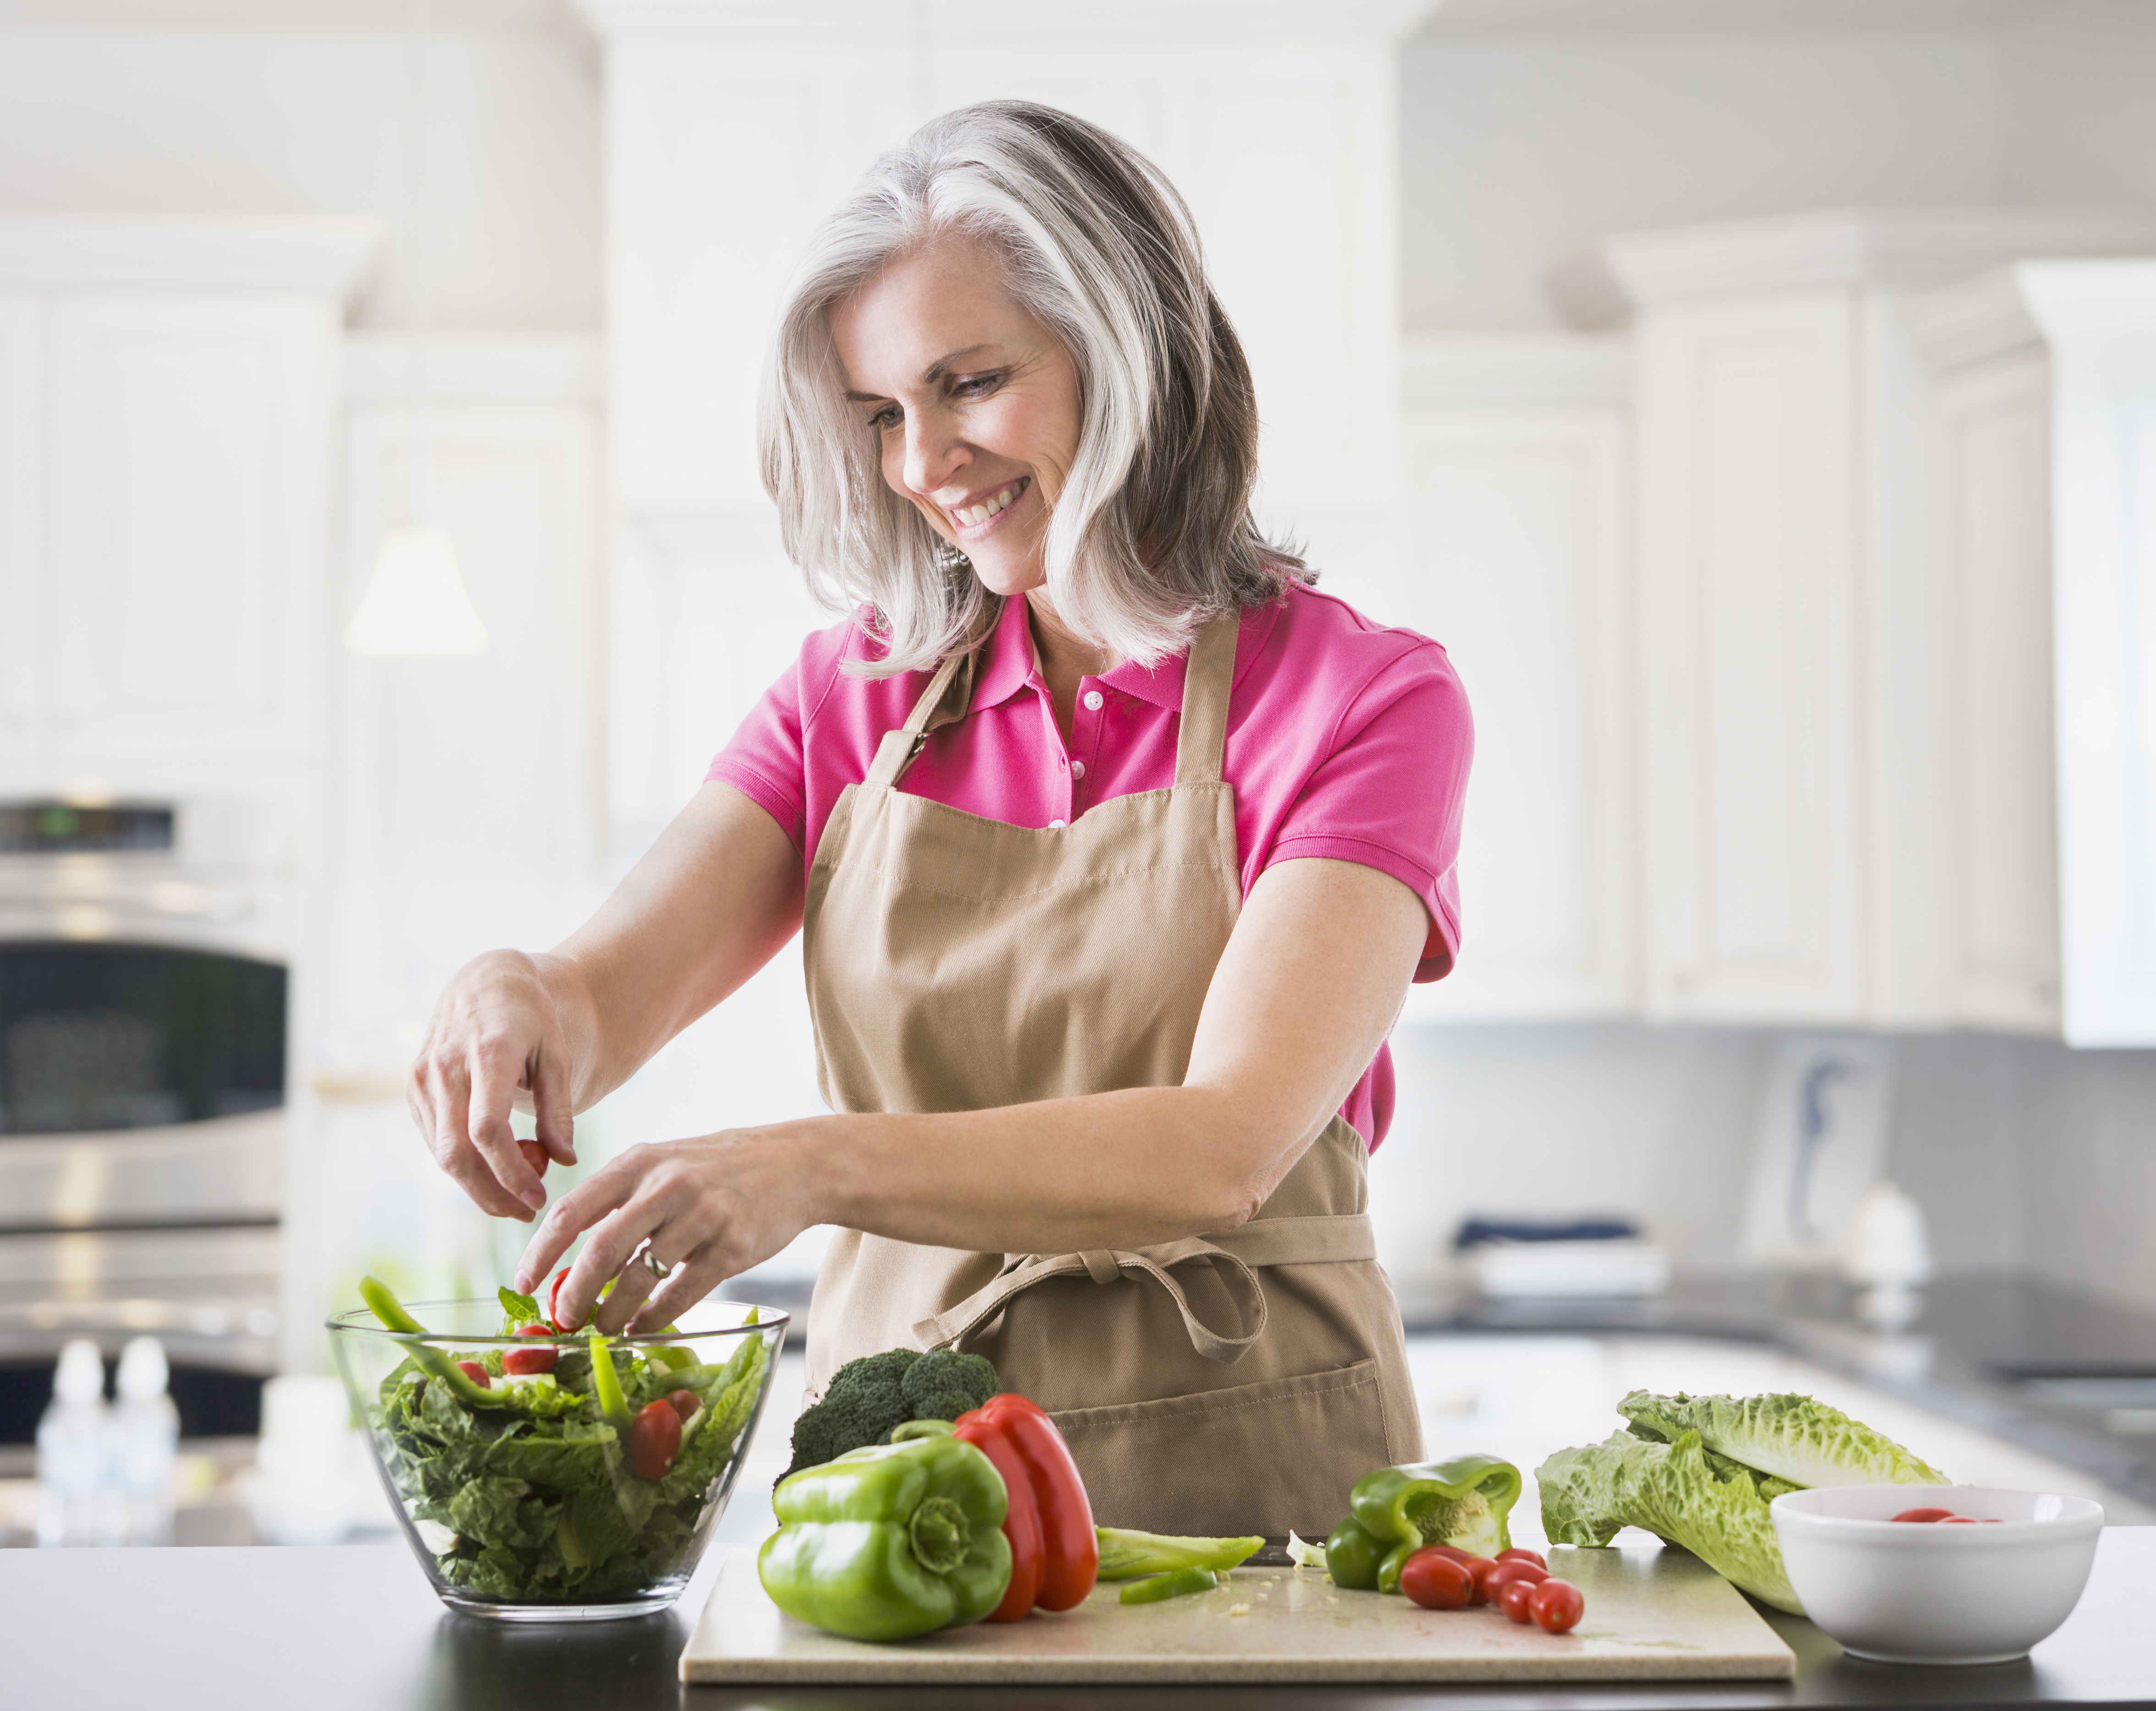 6 Tips to Fight Wrinkles, Age-Related Weight Gain, Memory Loss, and More